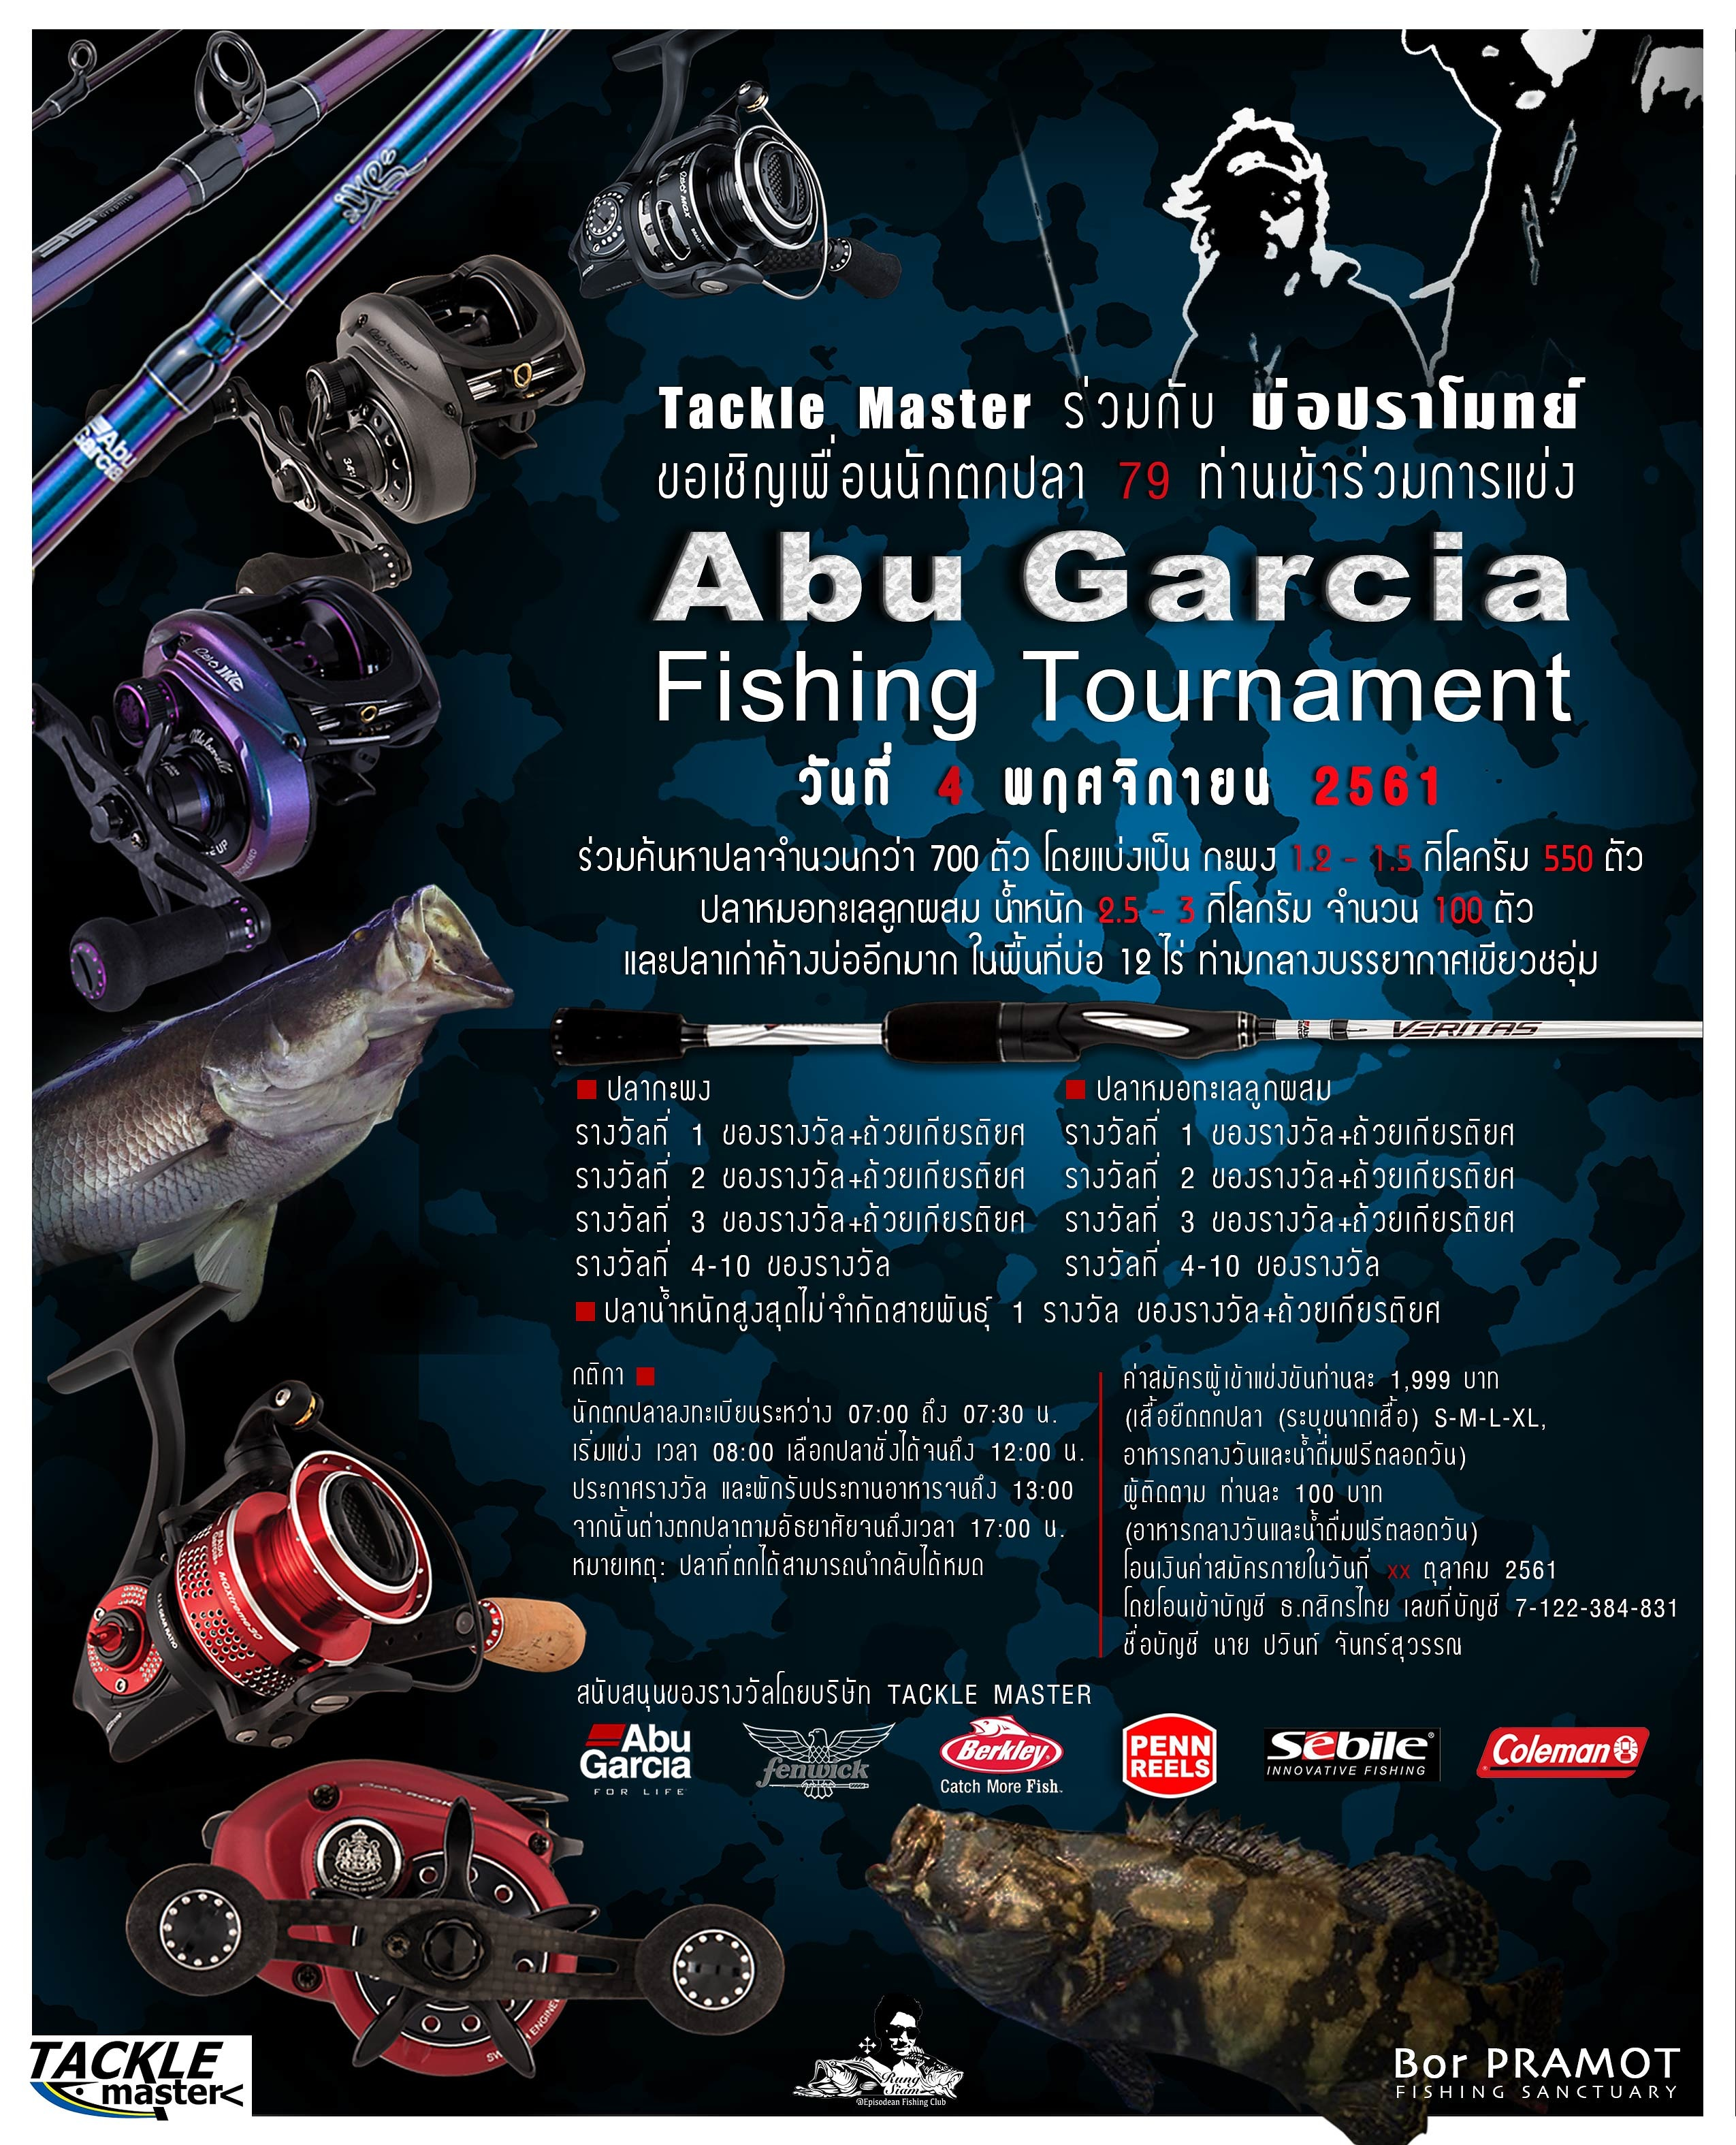 ABU GARCIA Fishing Tournament 4 พฤศจิกายน